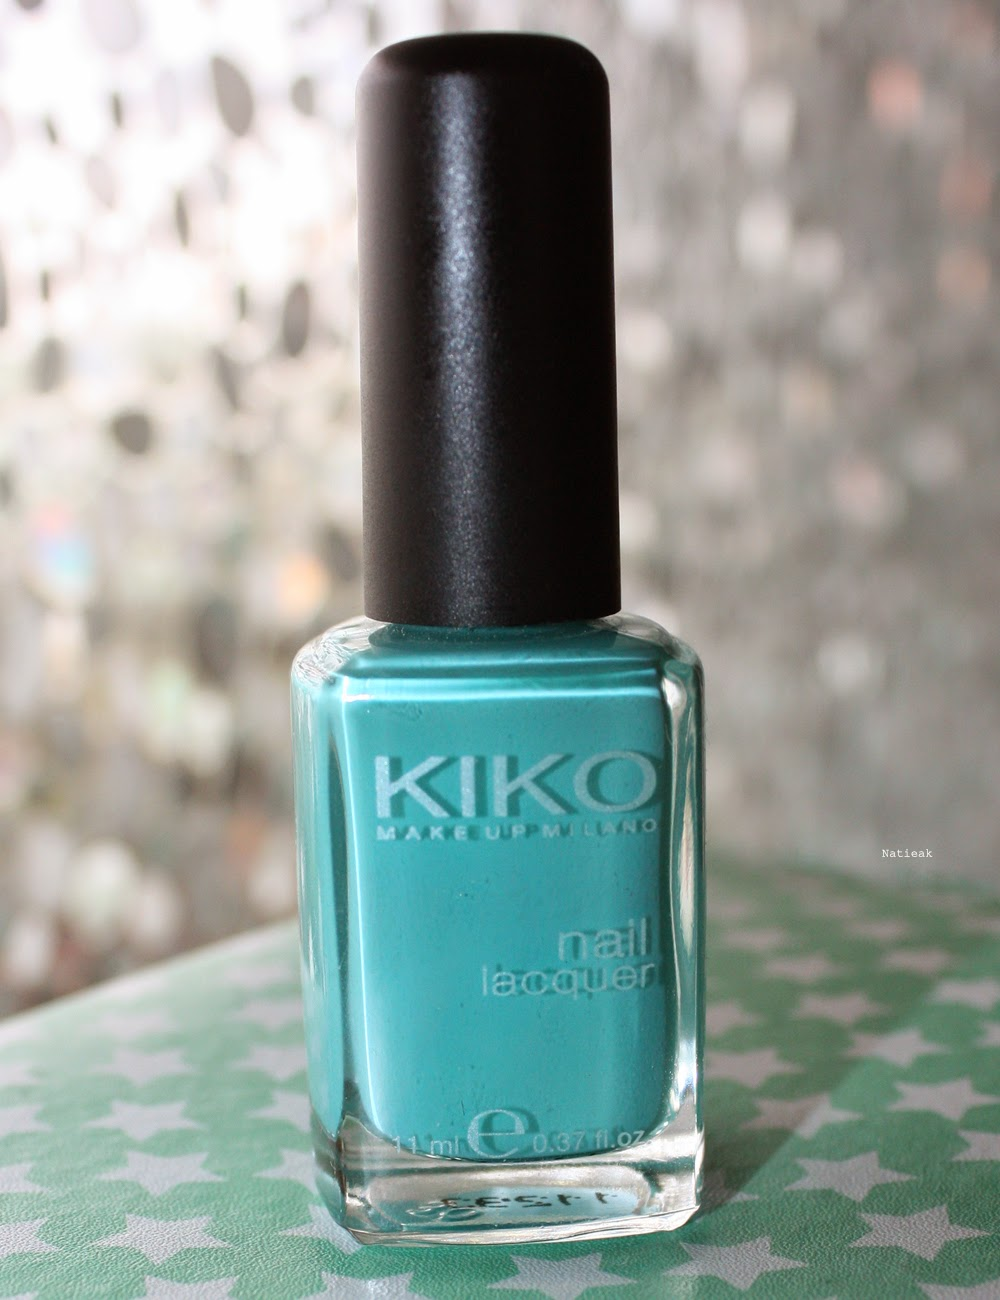 vernis à ongles Light Misty Green Kiko